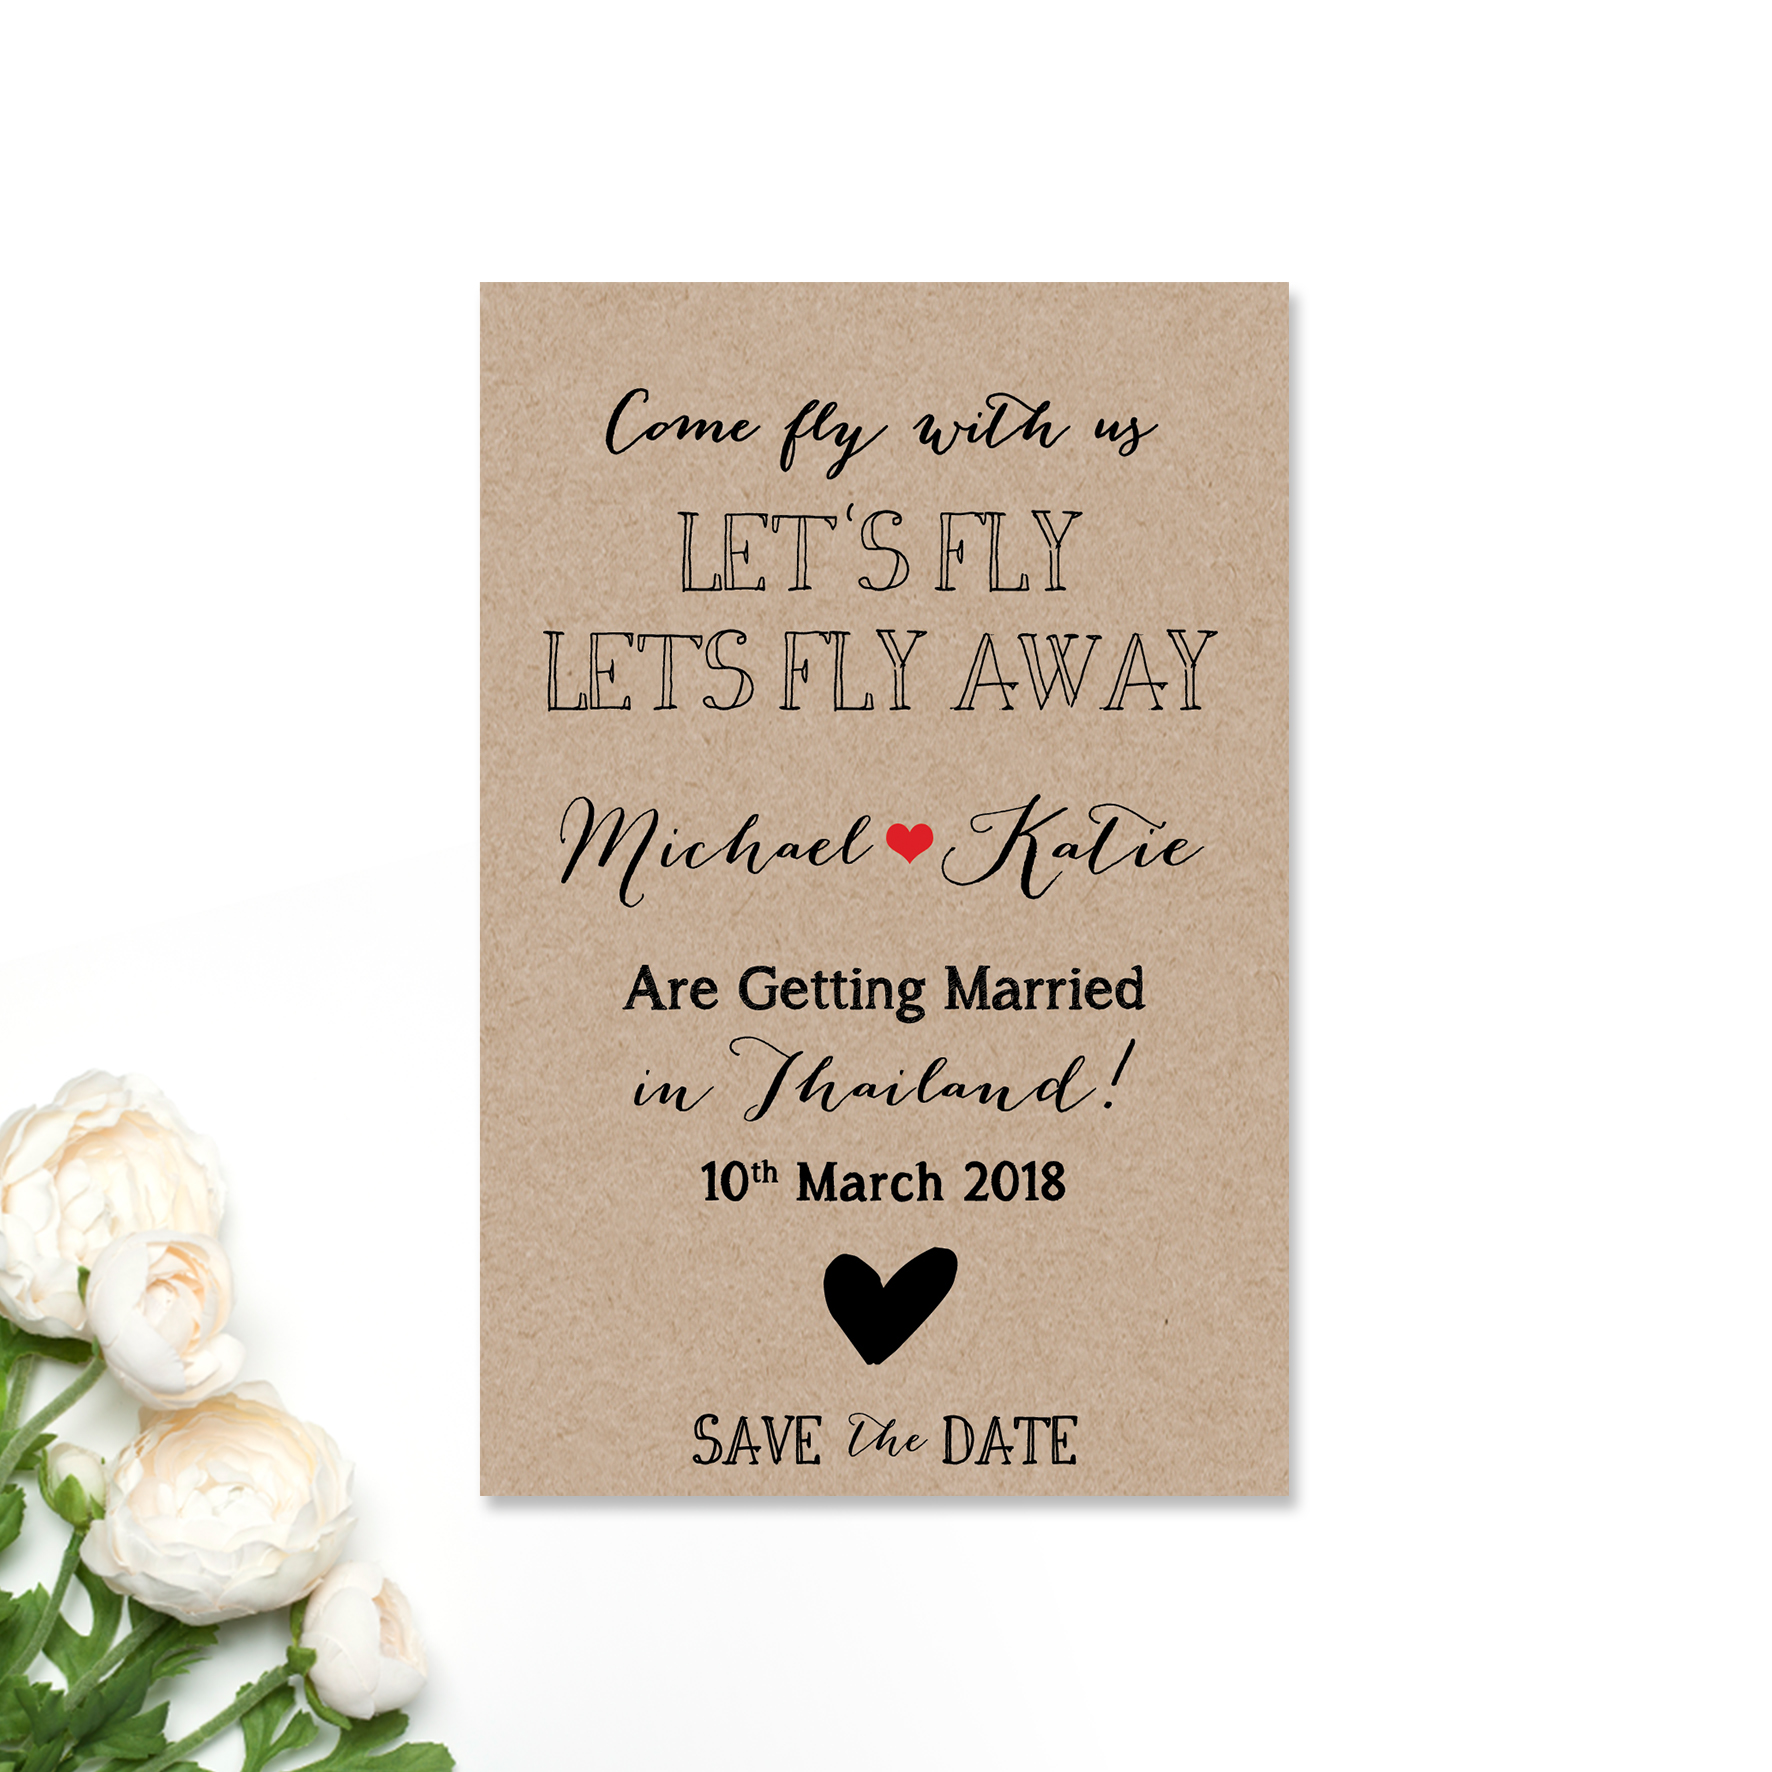 Michael + Katie Save the Date Card